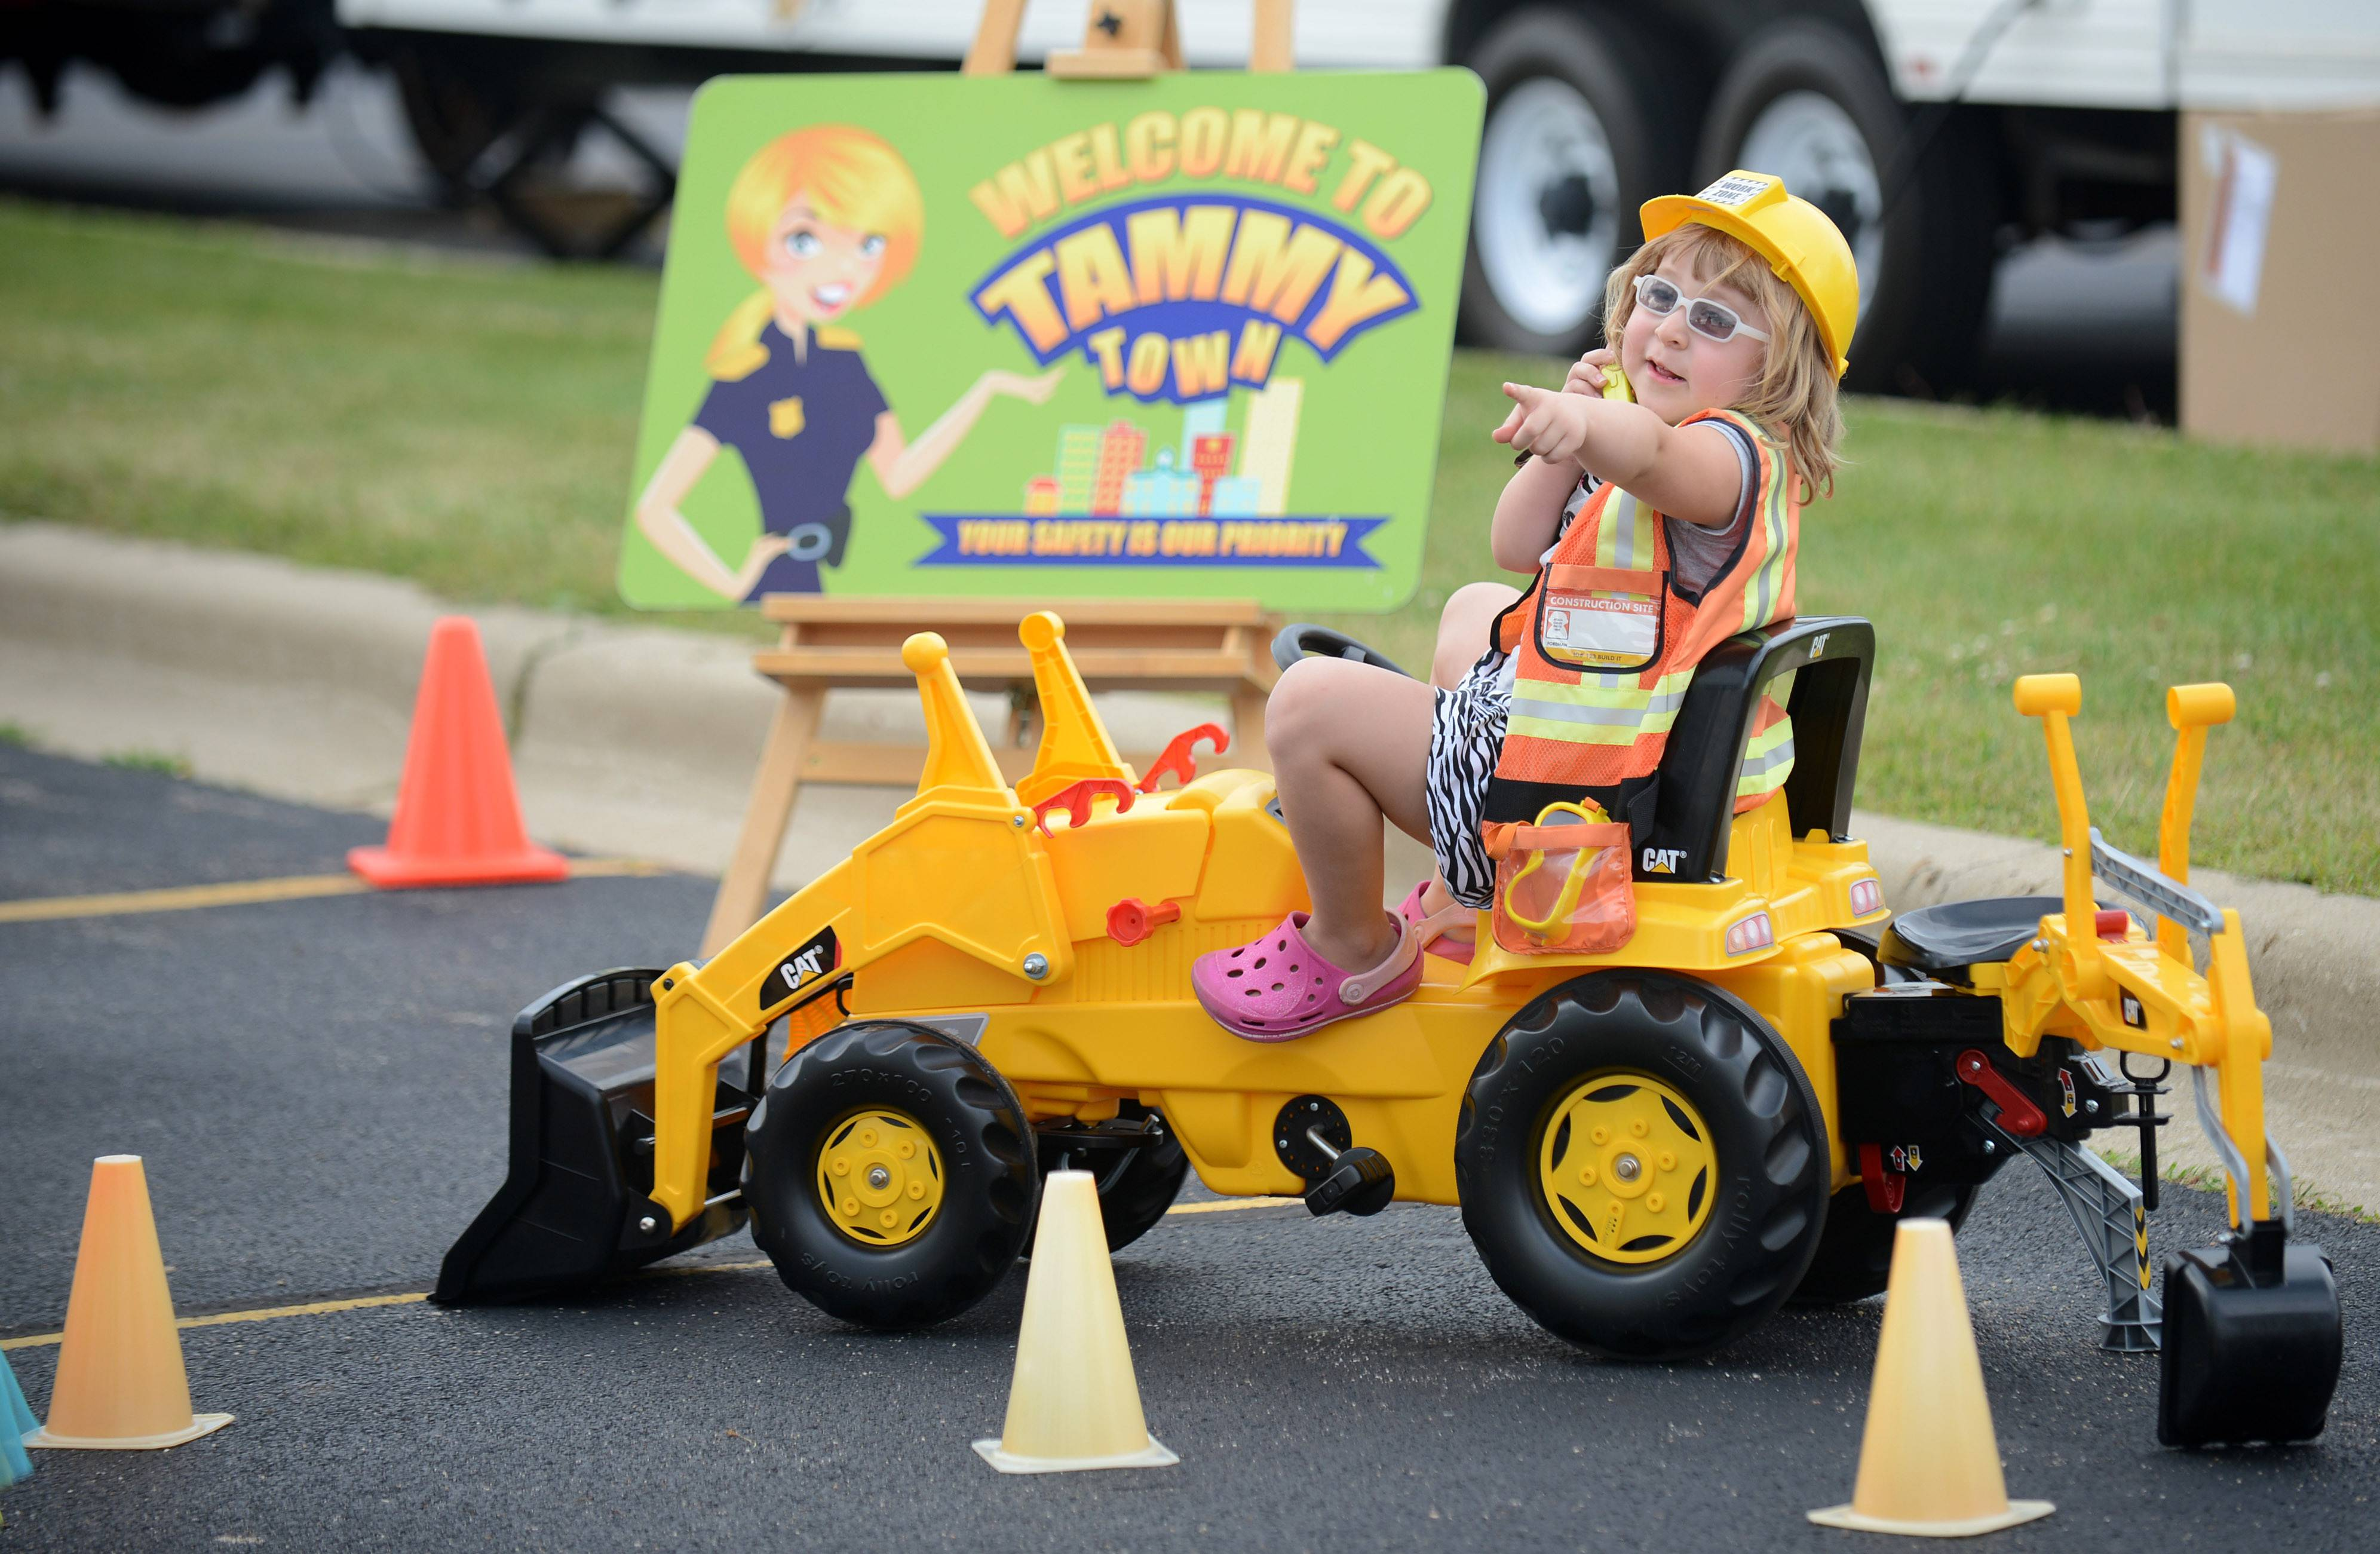 Sydney Sawyer, 4, of South Elgin calls in a 911 call to the police while acting the part of a construction worker in the Tammy Town interactive game for kids at South Elgin's National Night Out event at Jim Hansen Park on Tuesday night. The program is Bartlett police Officer Tammy Schulz's creation.